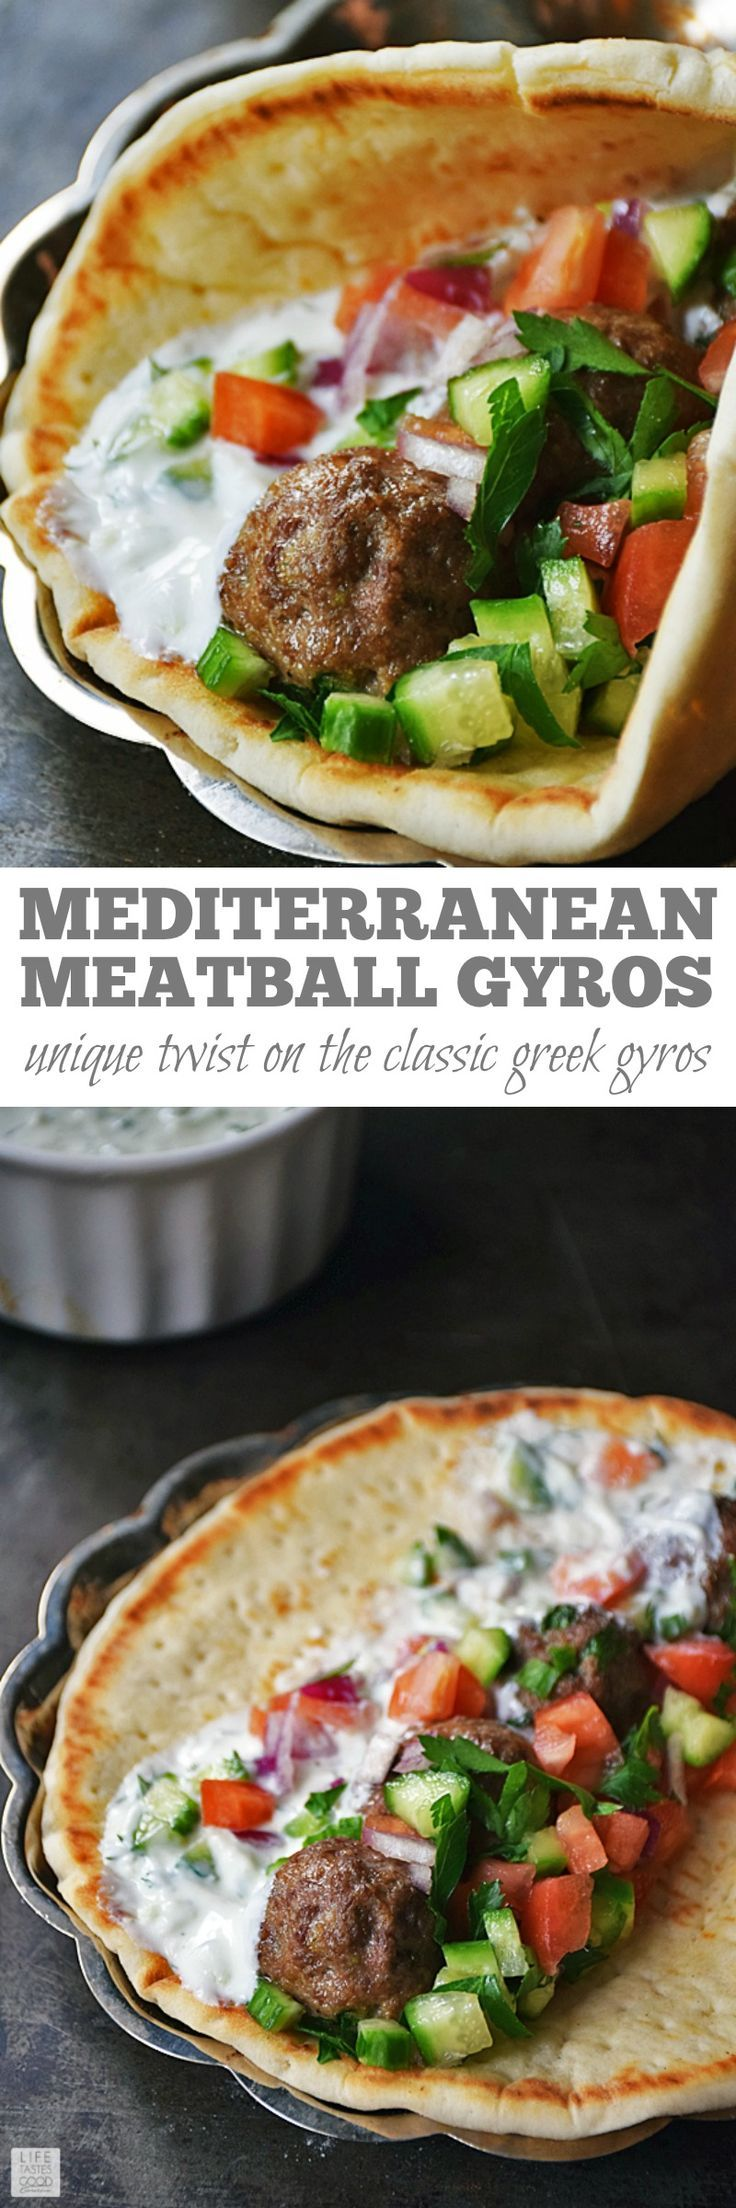 72 best greek to me images on pinterest recipes snacks and cooker mediterranean meatball gyros sandwich sundaysupper forumfinder Image collections